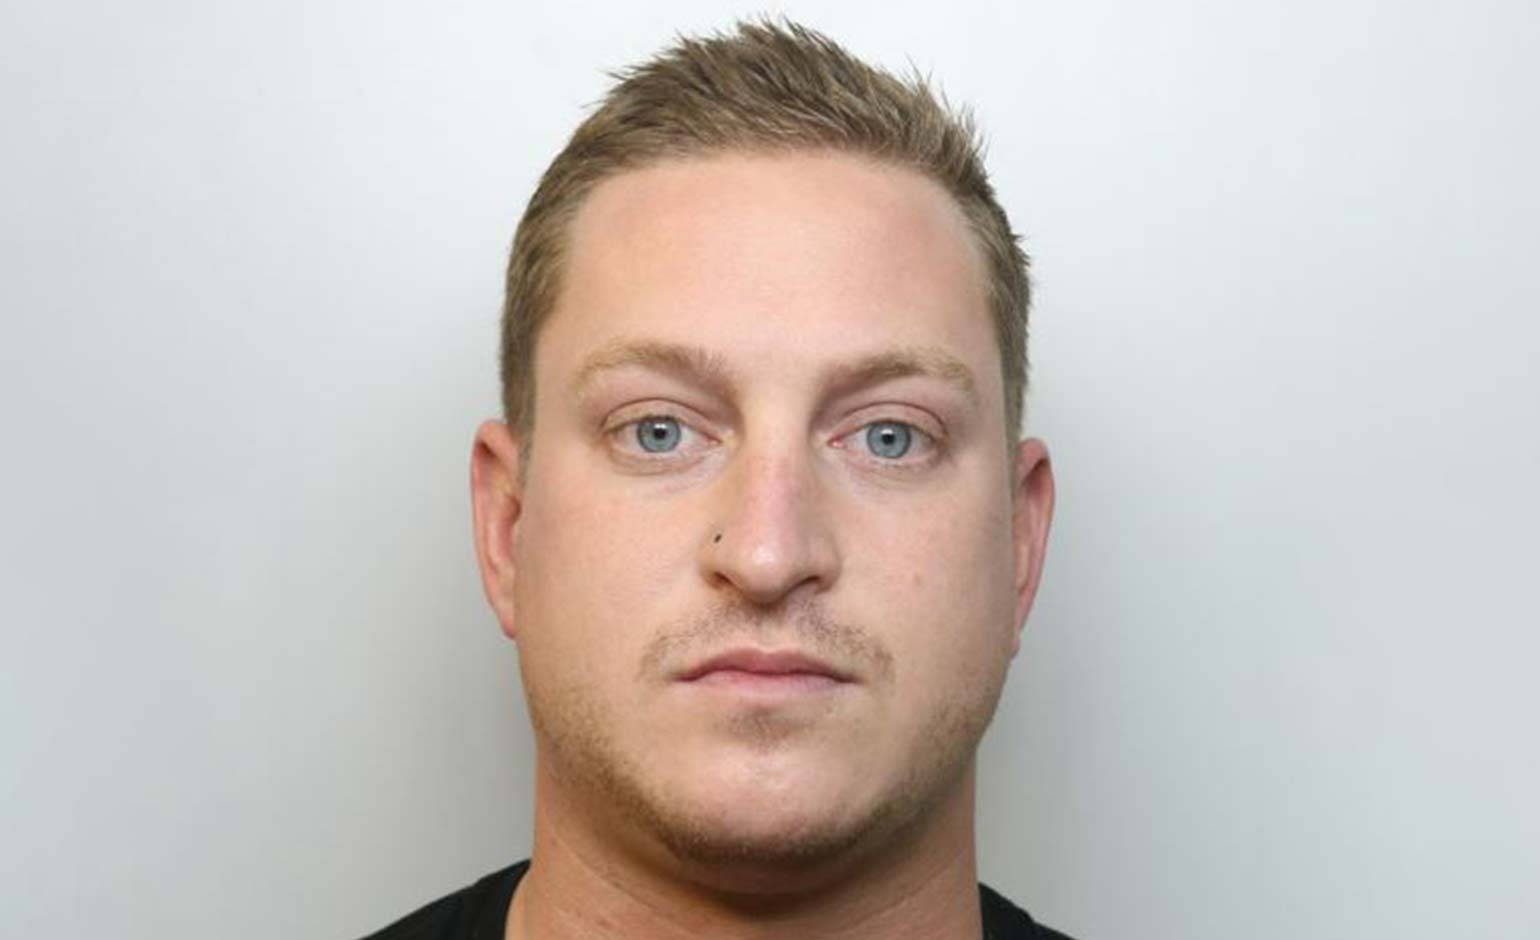 Local man jailed for three years after defrauding women on dating sites